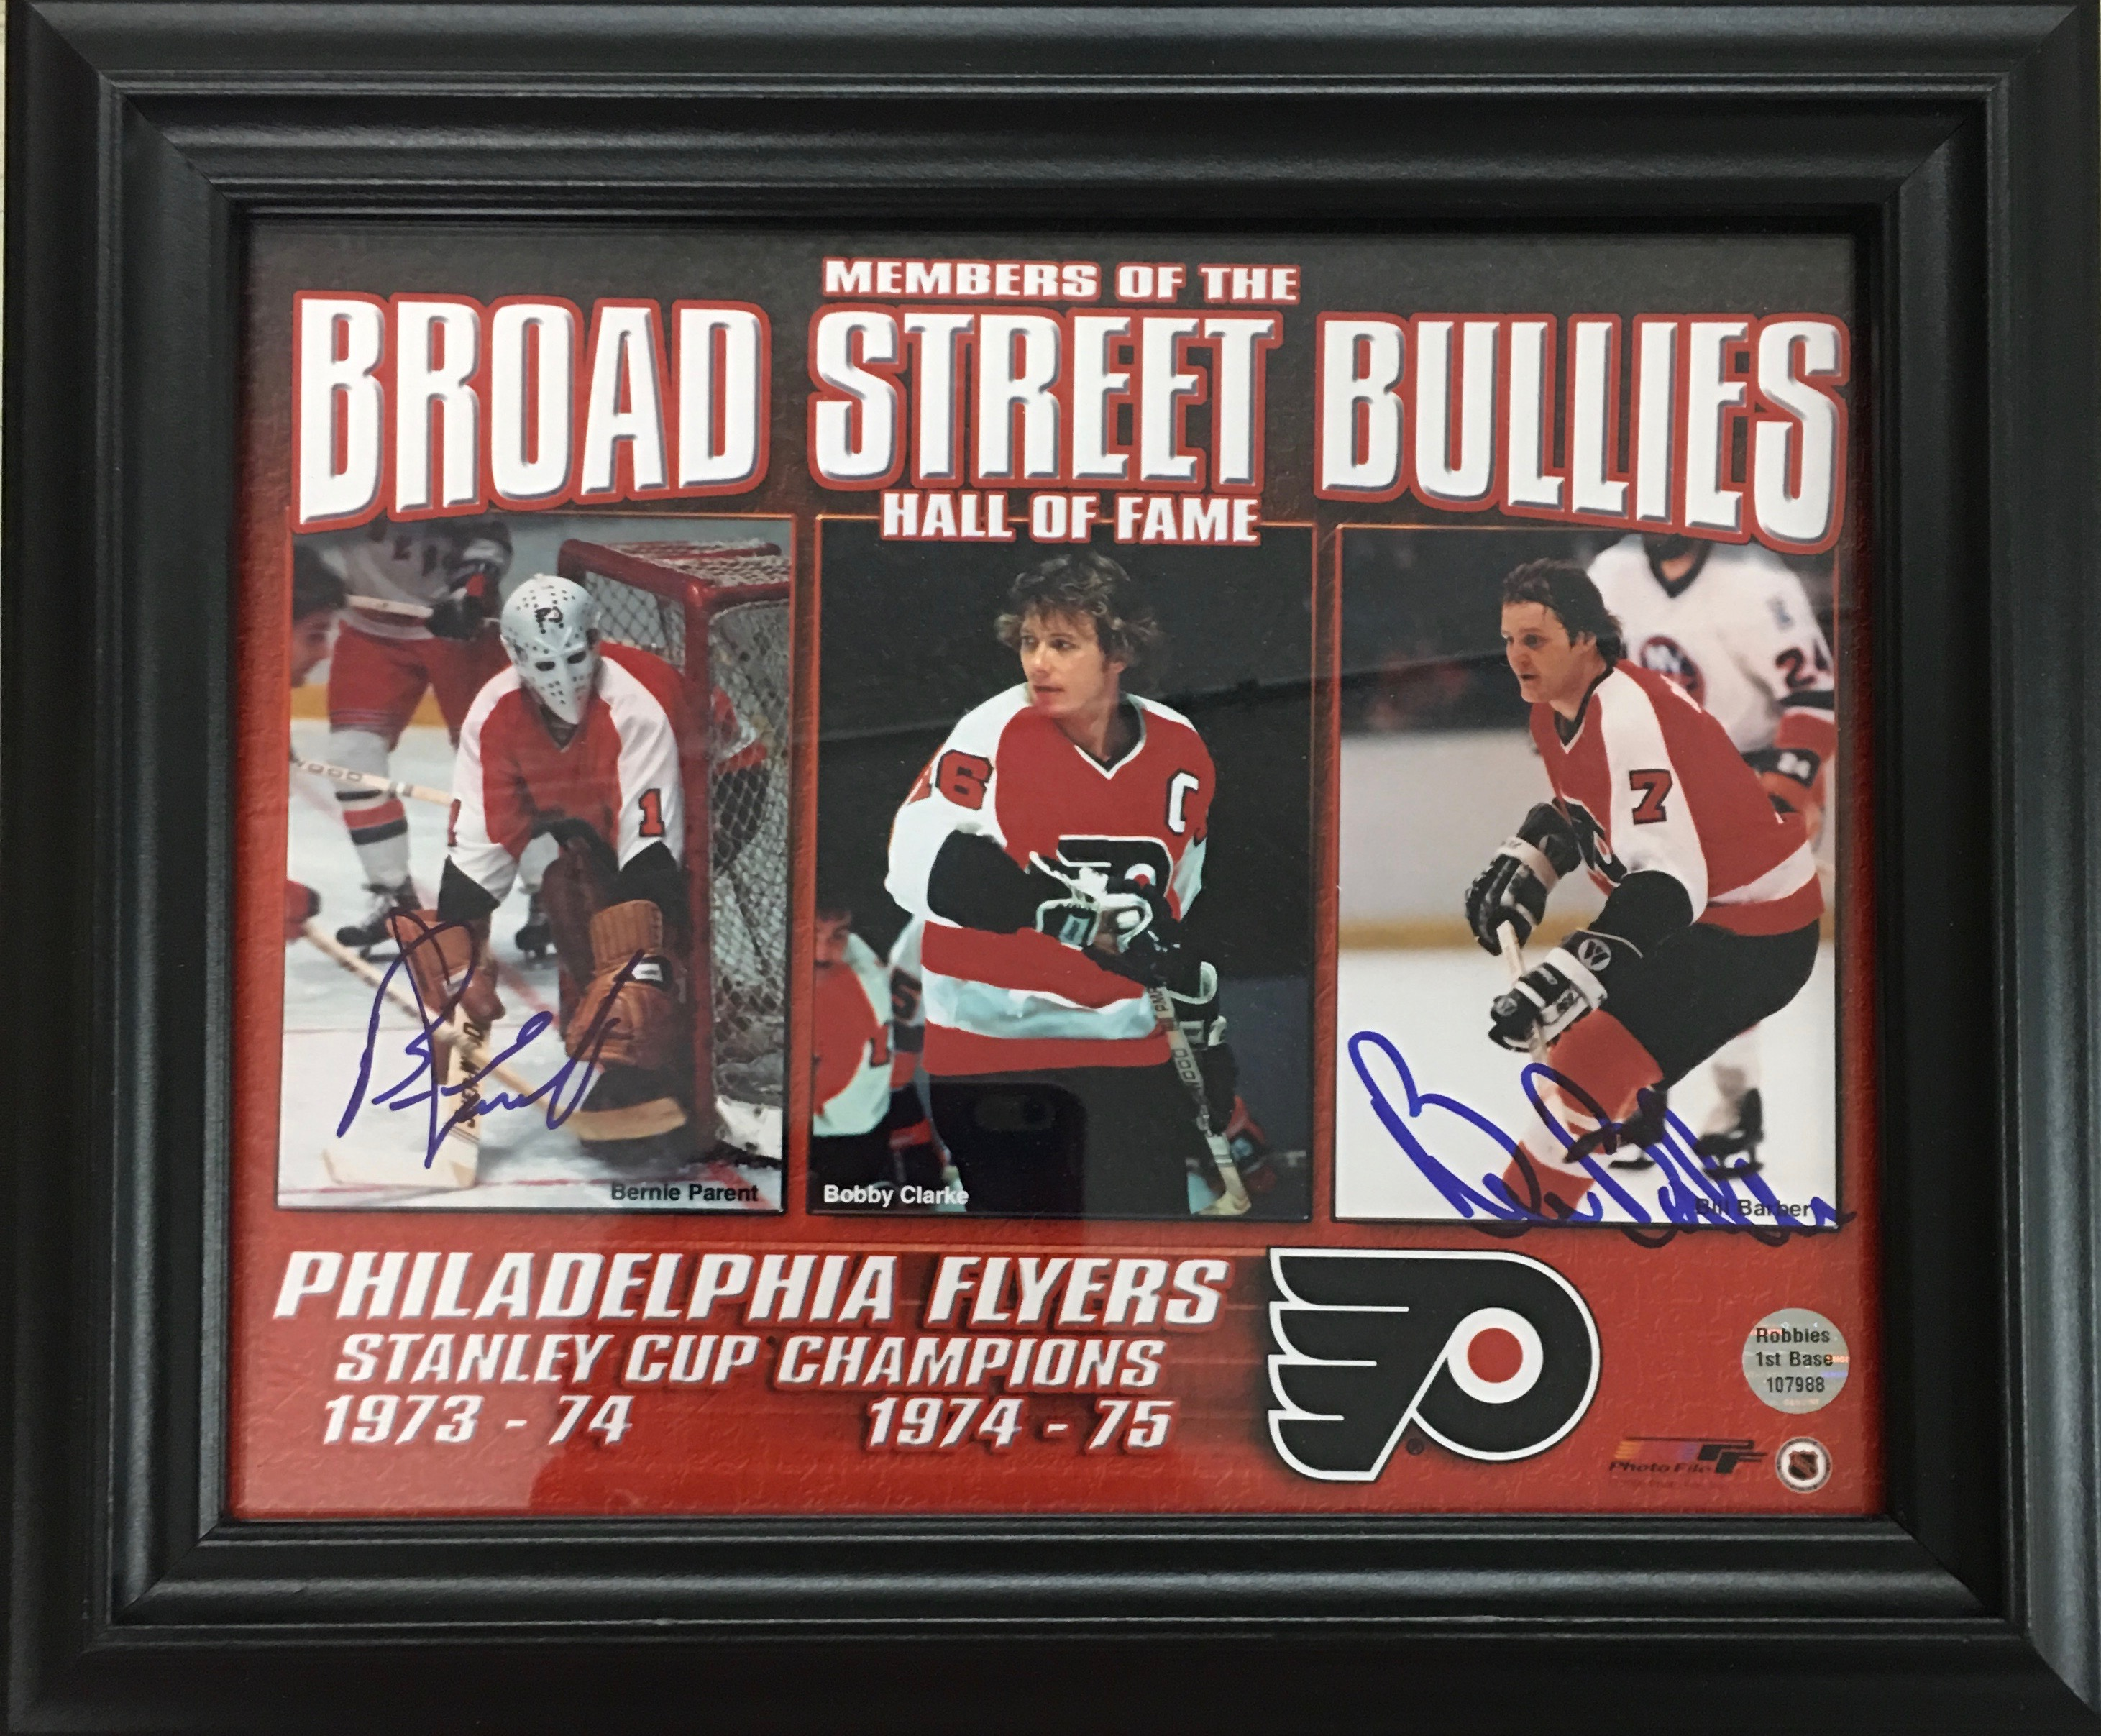 Autographed photo by 2 members of the Broad Street Bullies